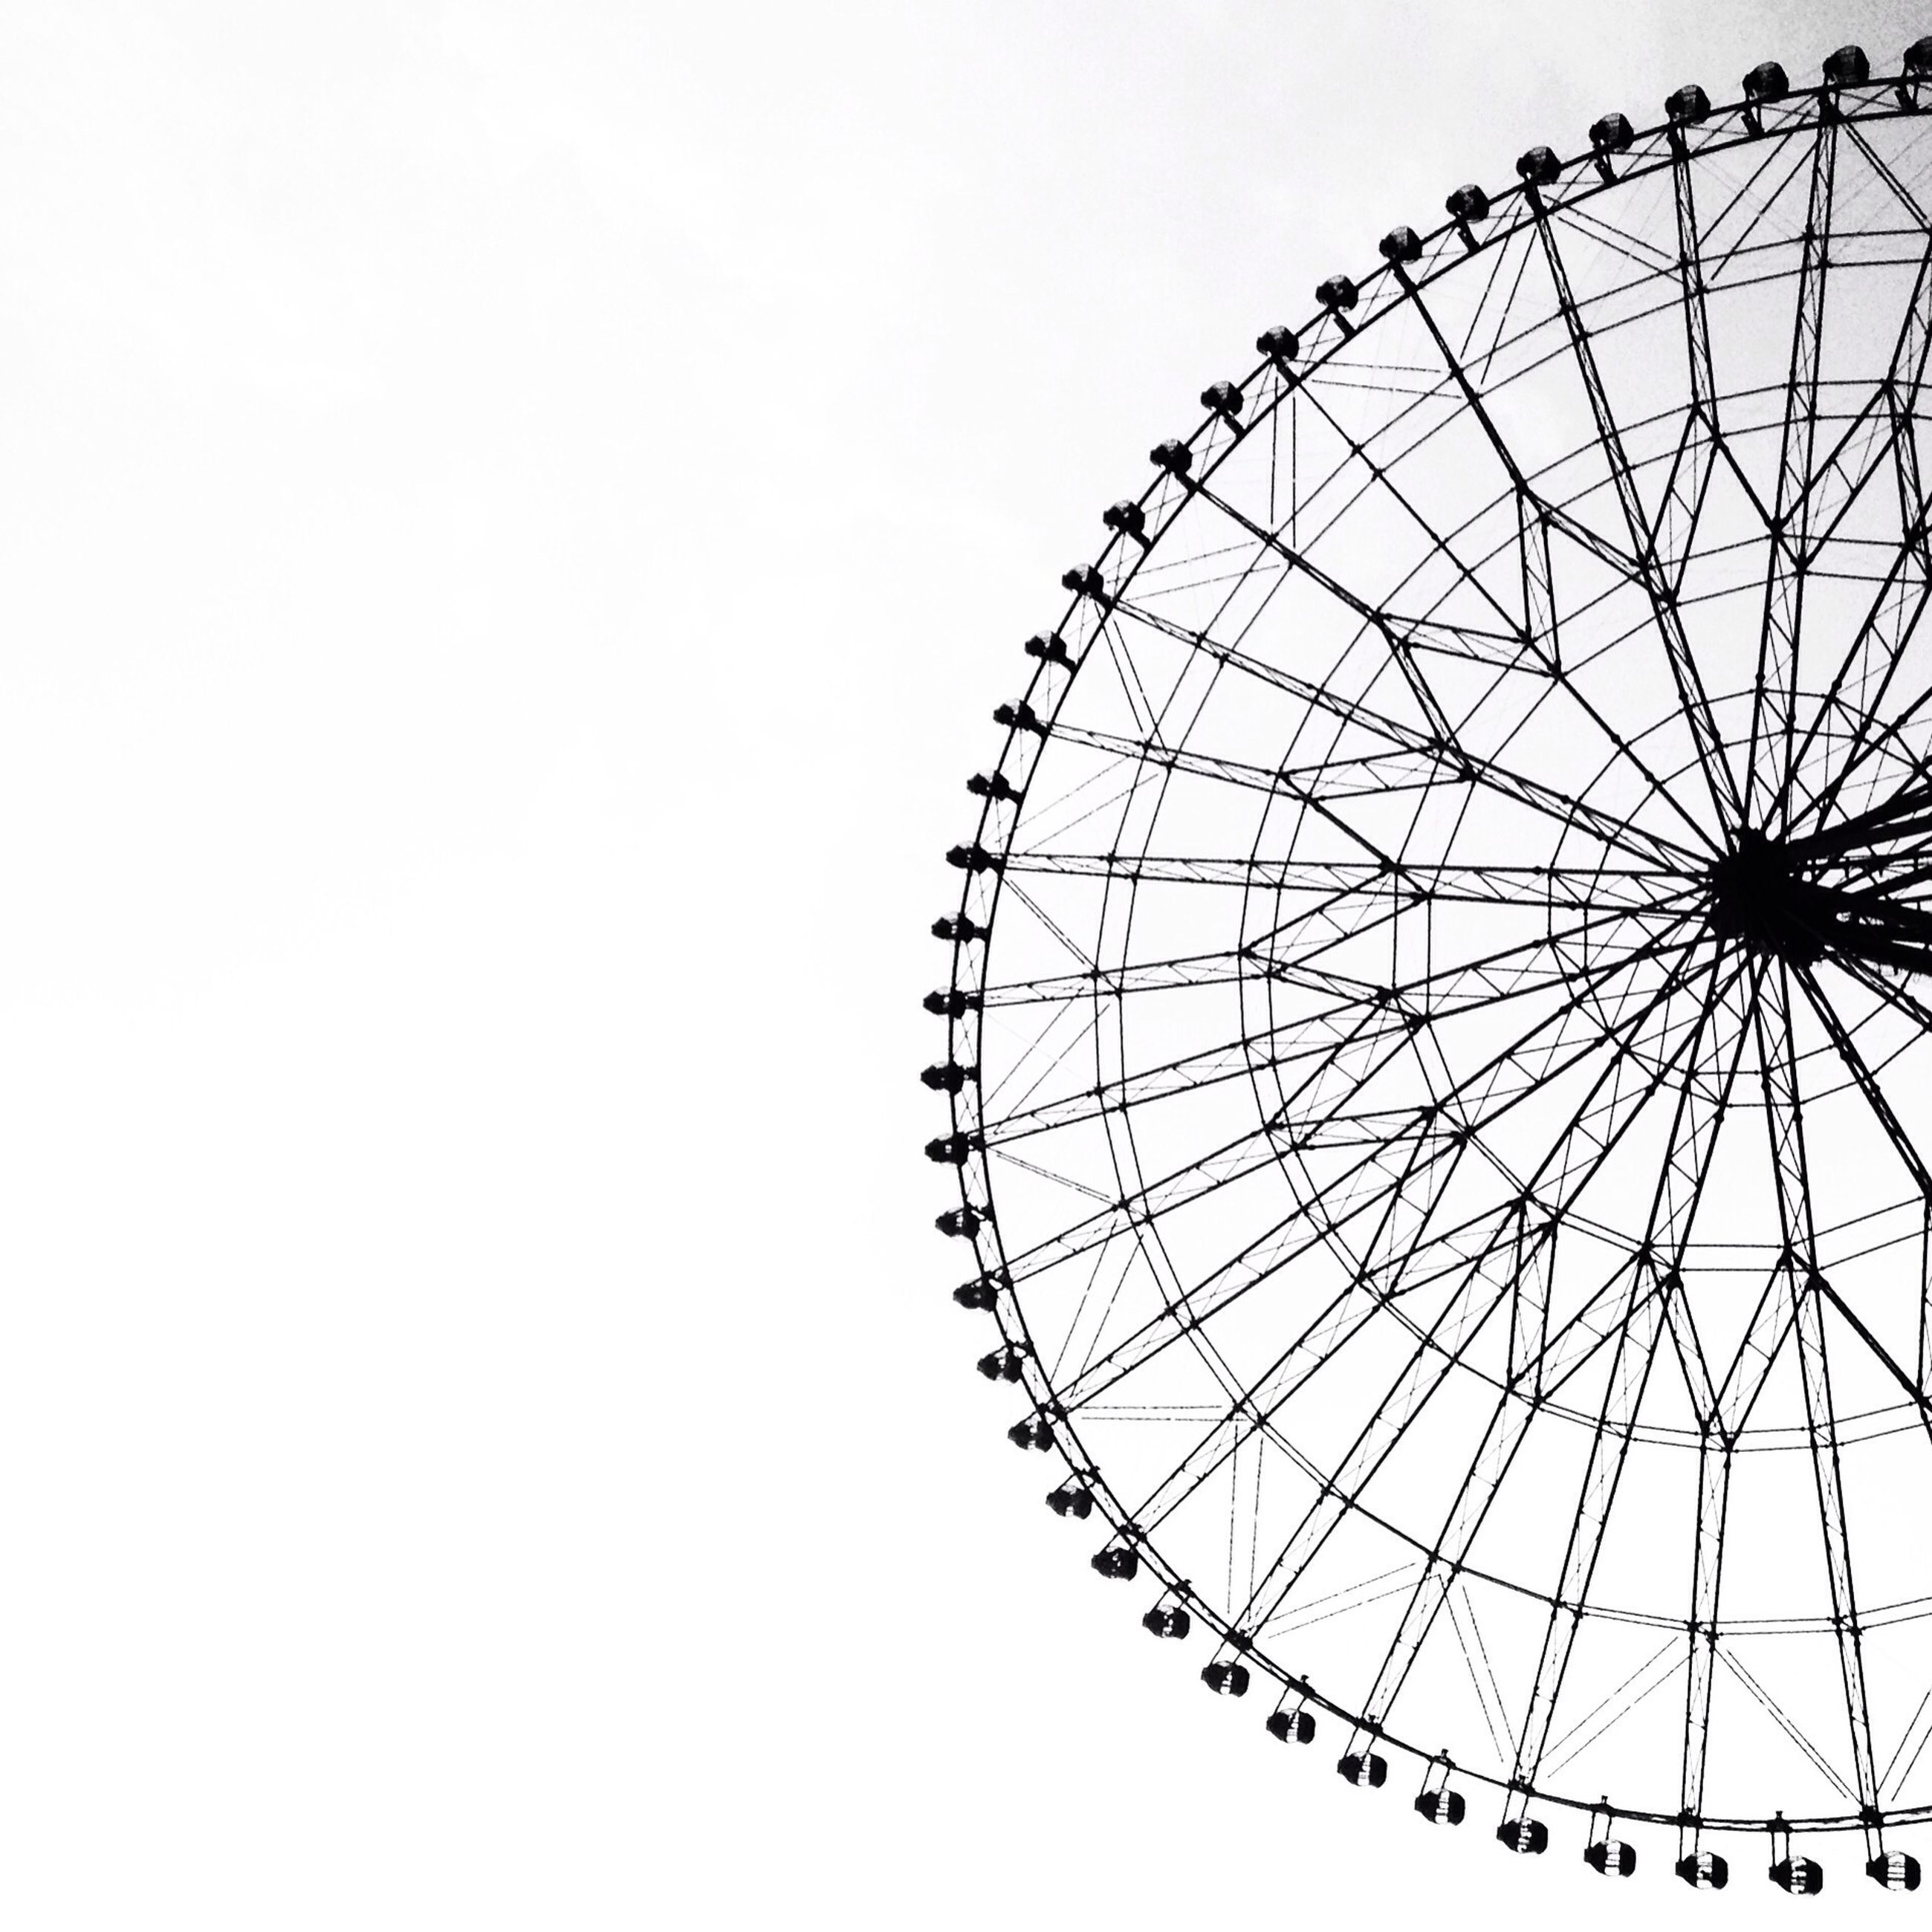 low angle view, ferris wheel, amusement park, amusement park ride, arts culture and entertainment, clear sky, sky, copy space, circle, built structure, outdoors, day, no people, pattern, metal, big wheel, large, architecture, silhouette, part of